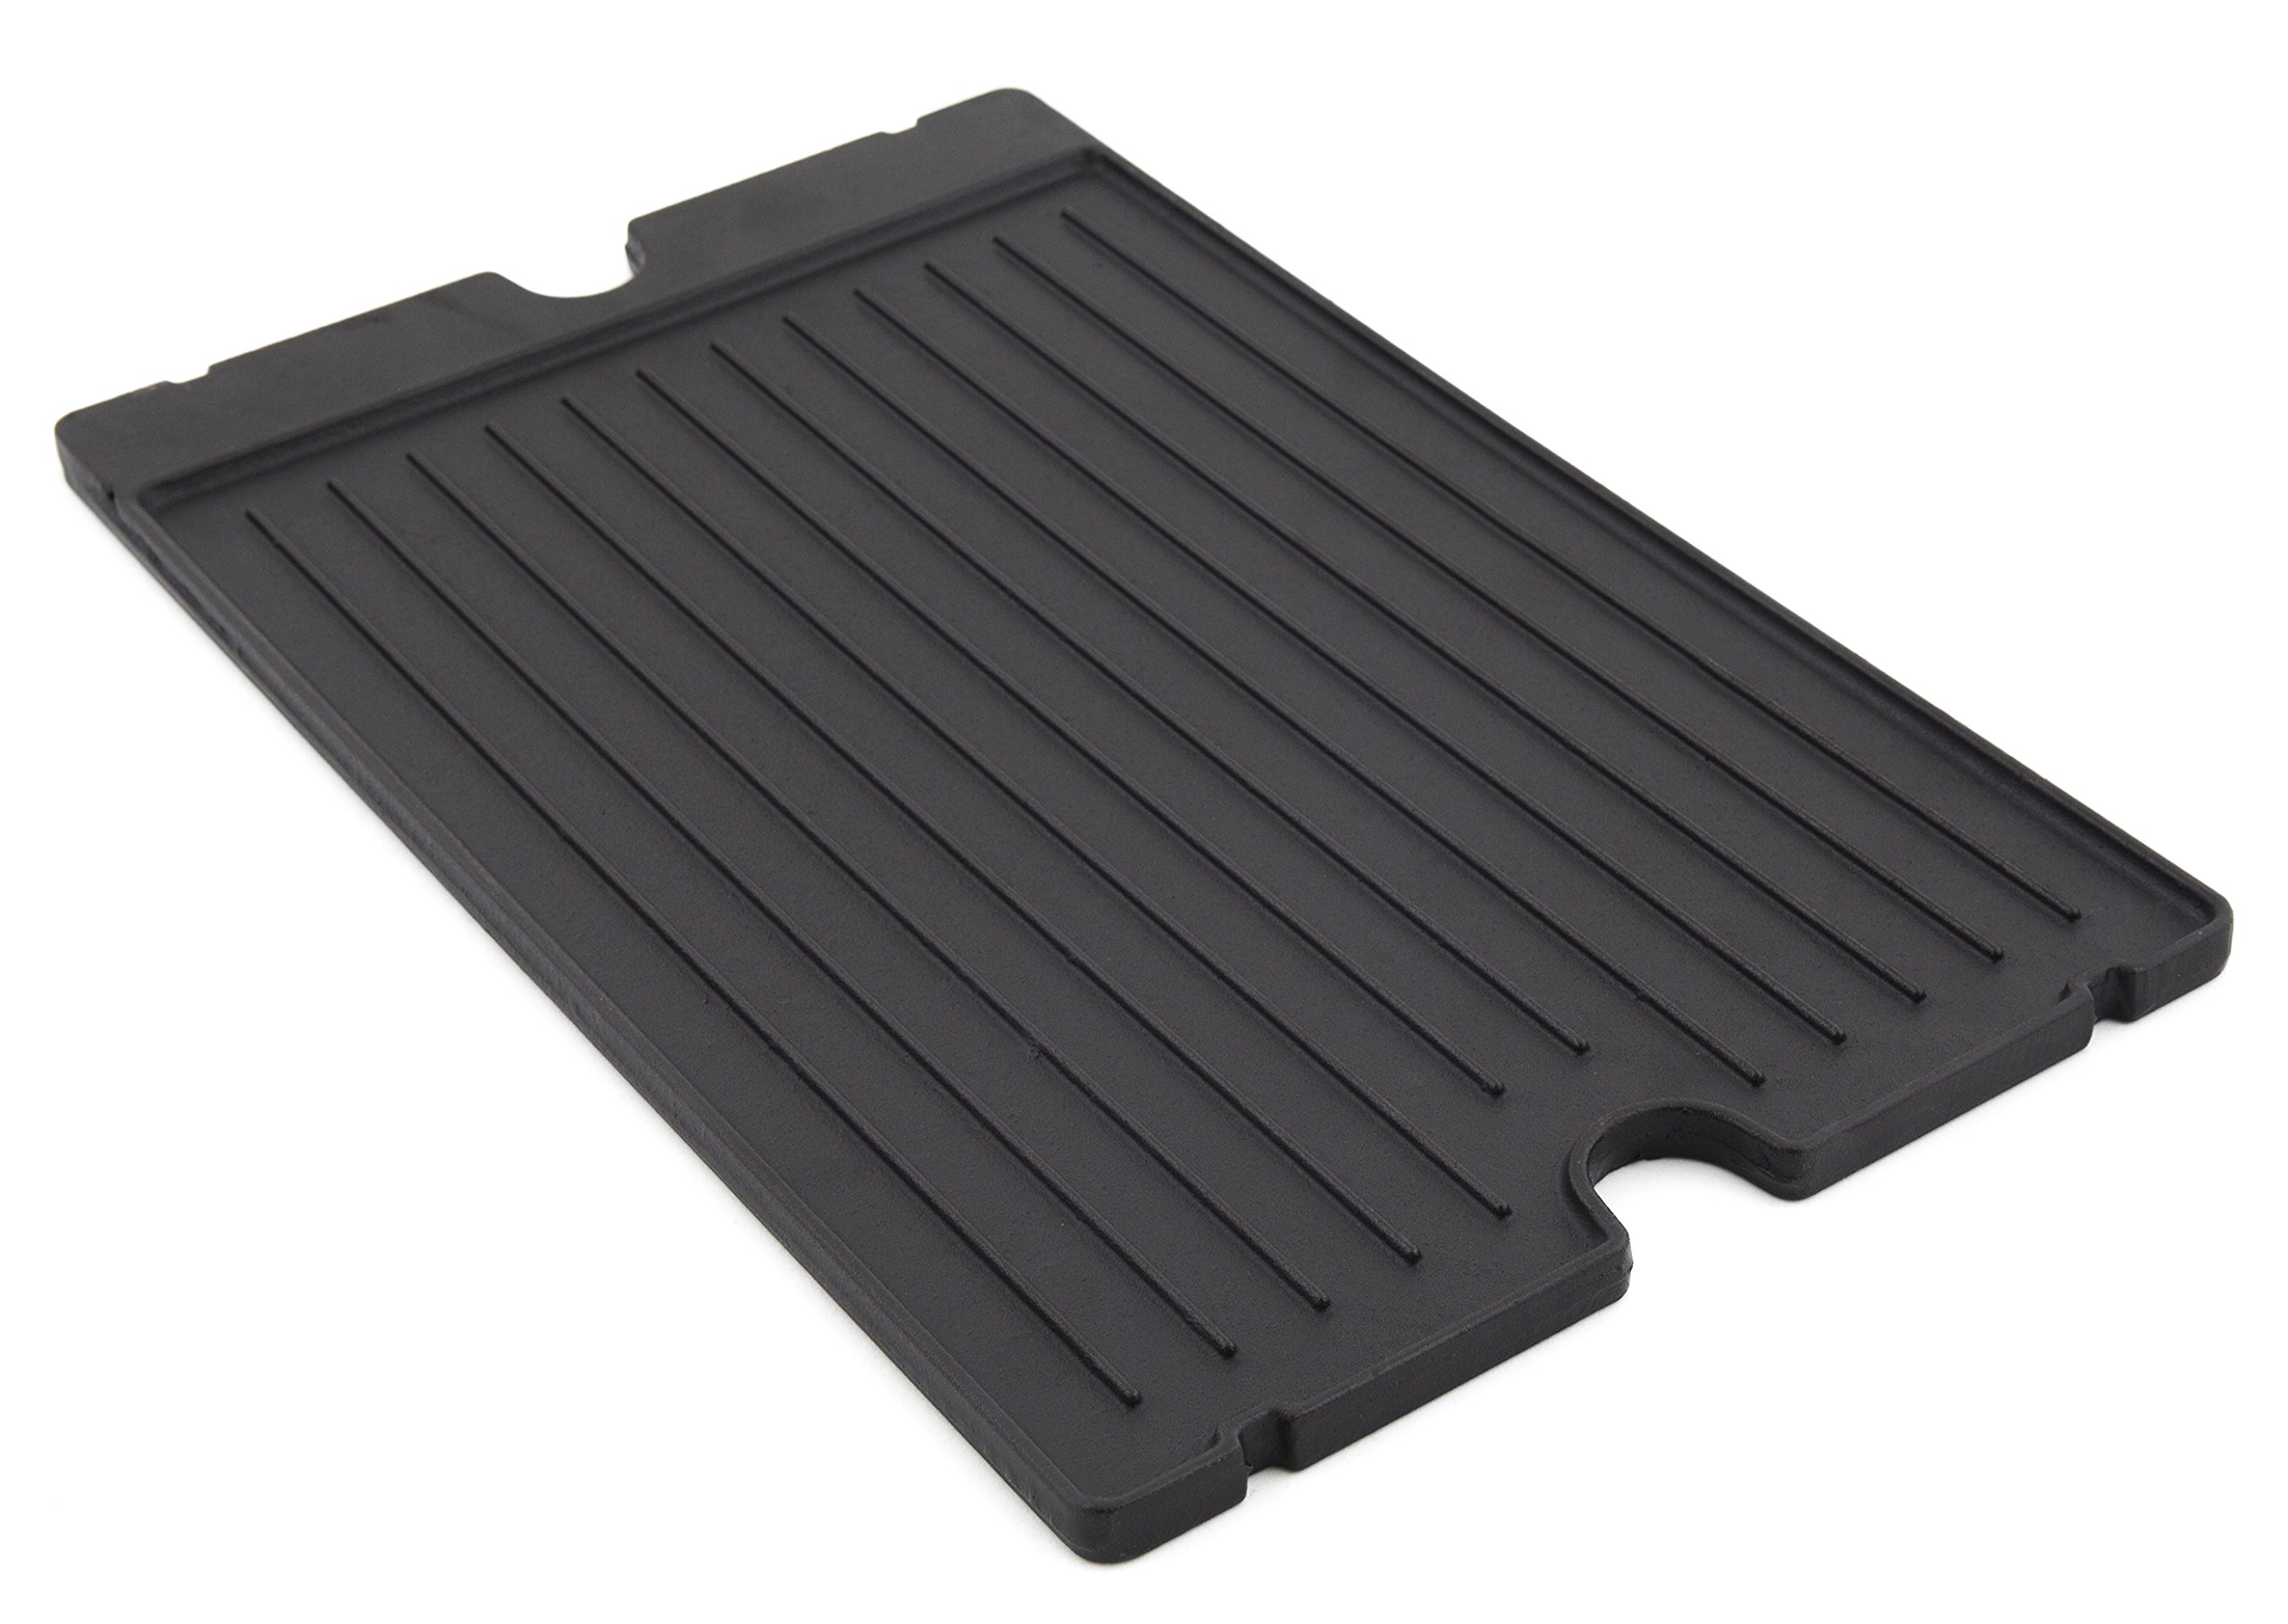 Broil King 11242 Exact Fit Cast Iron Griddle for the Broil King Baron Series Gas Grill by Broil King (Image #2)